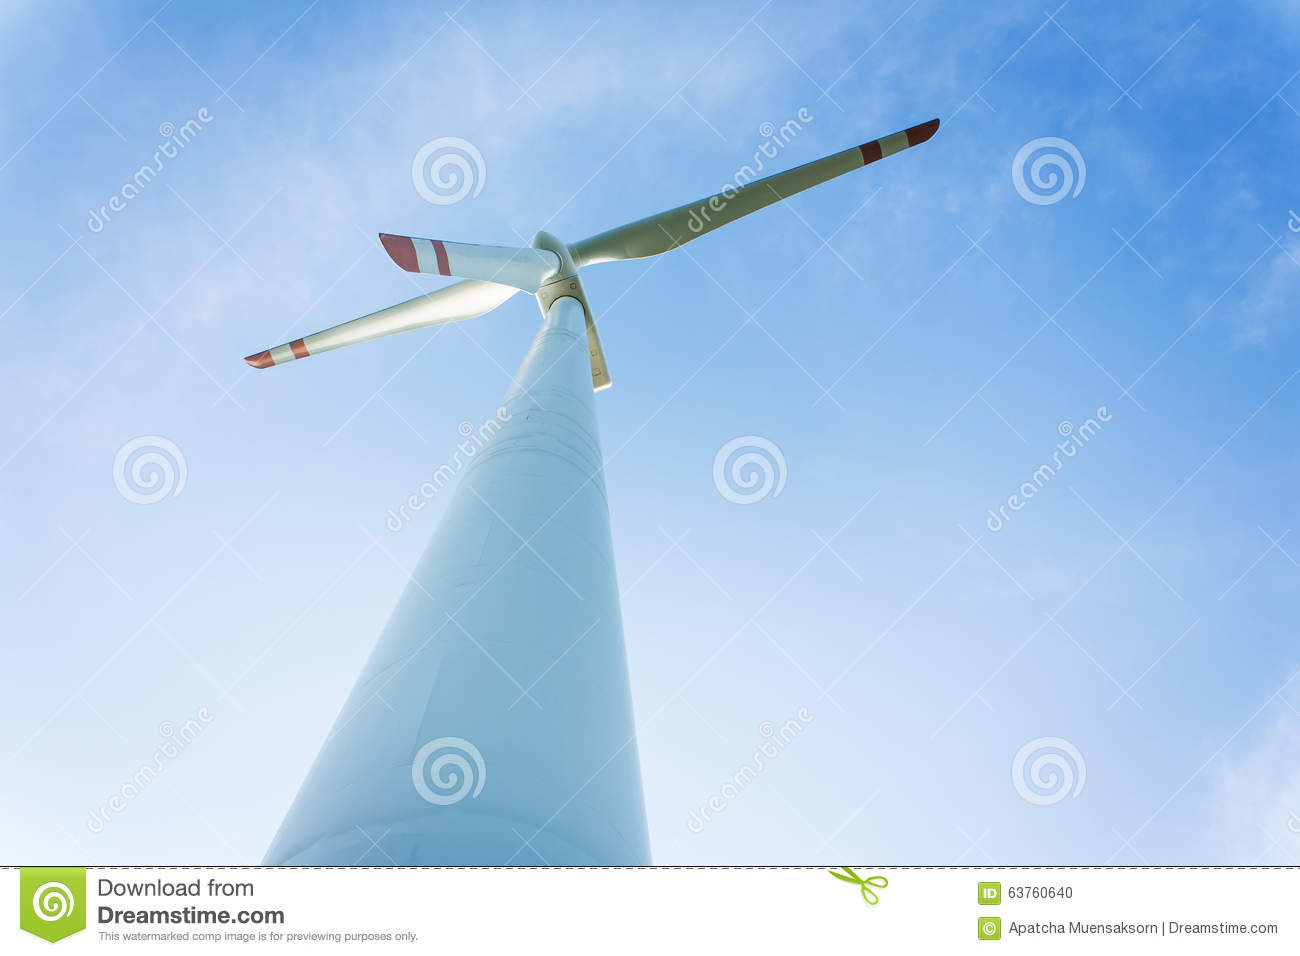 Wind Turbine Generating Electricity Stock Photo - Image: 63760640